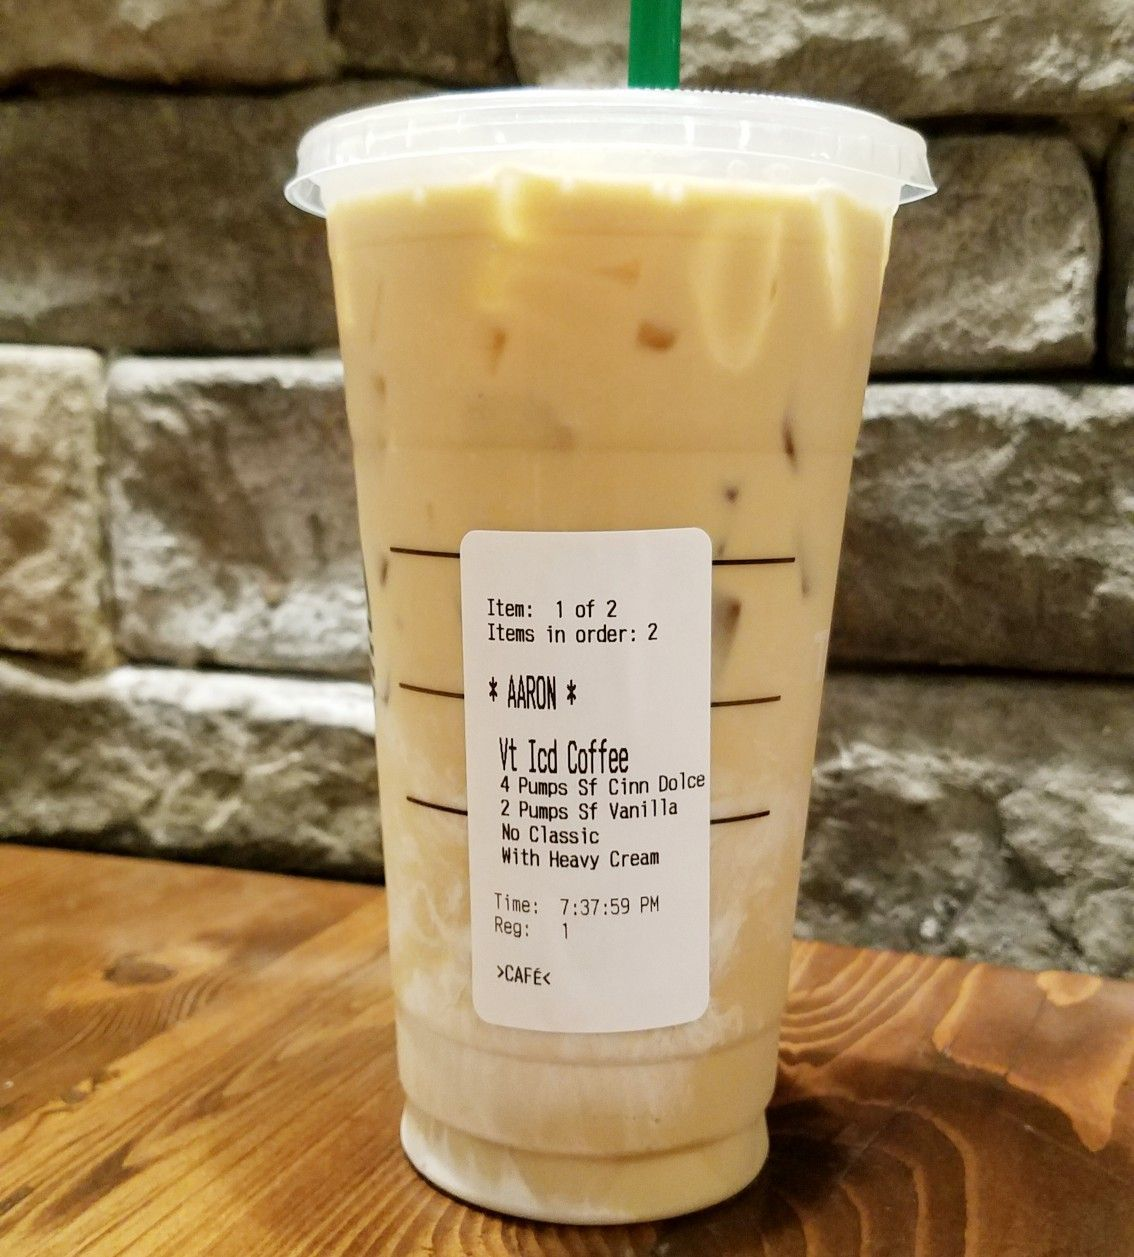 Keto Friendly Iced Coffee At Starbucks 😍 Make Sure You Ask